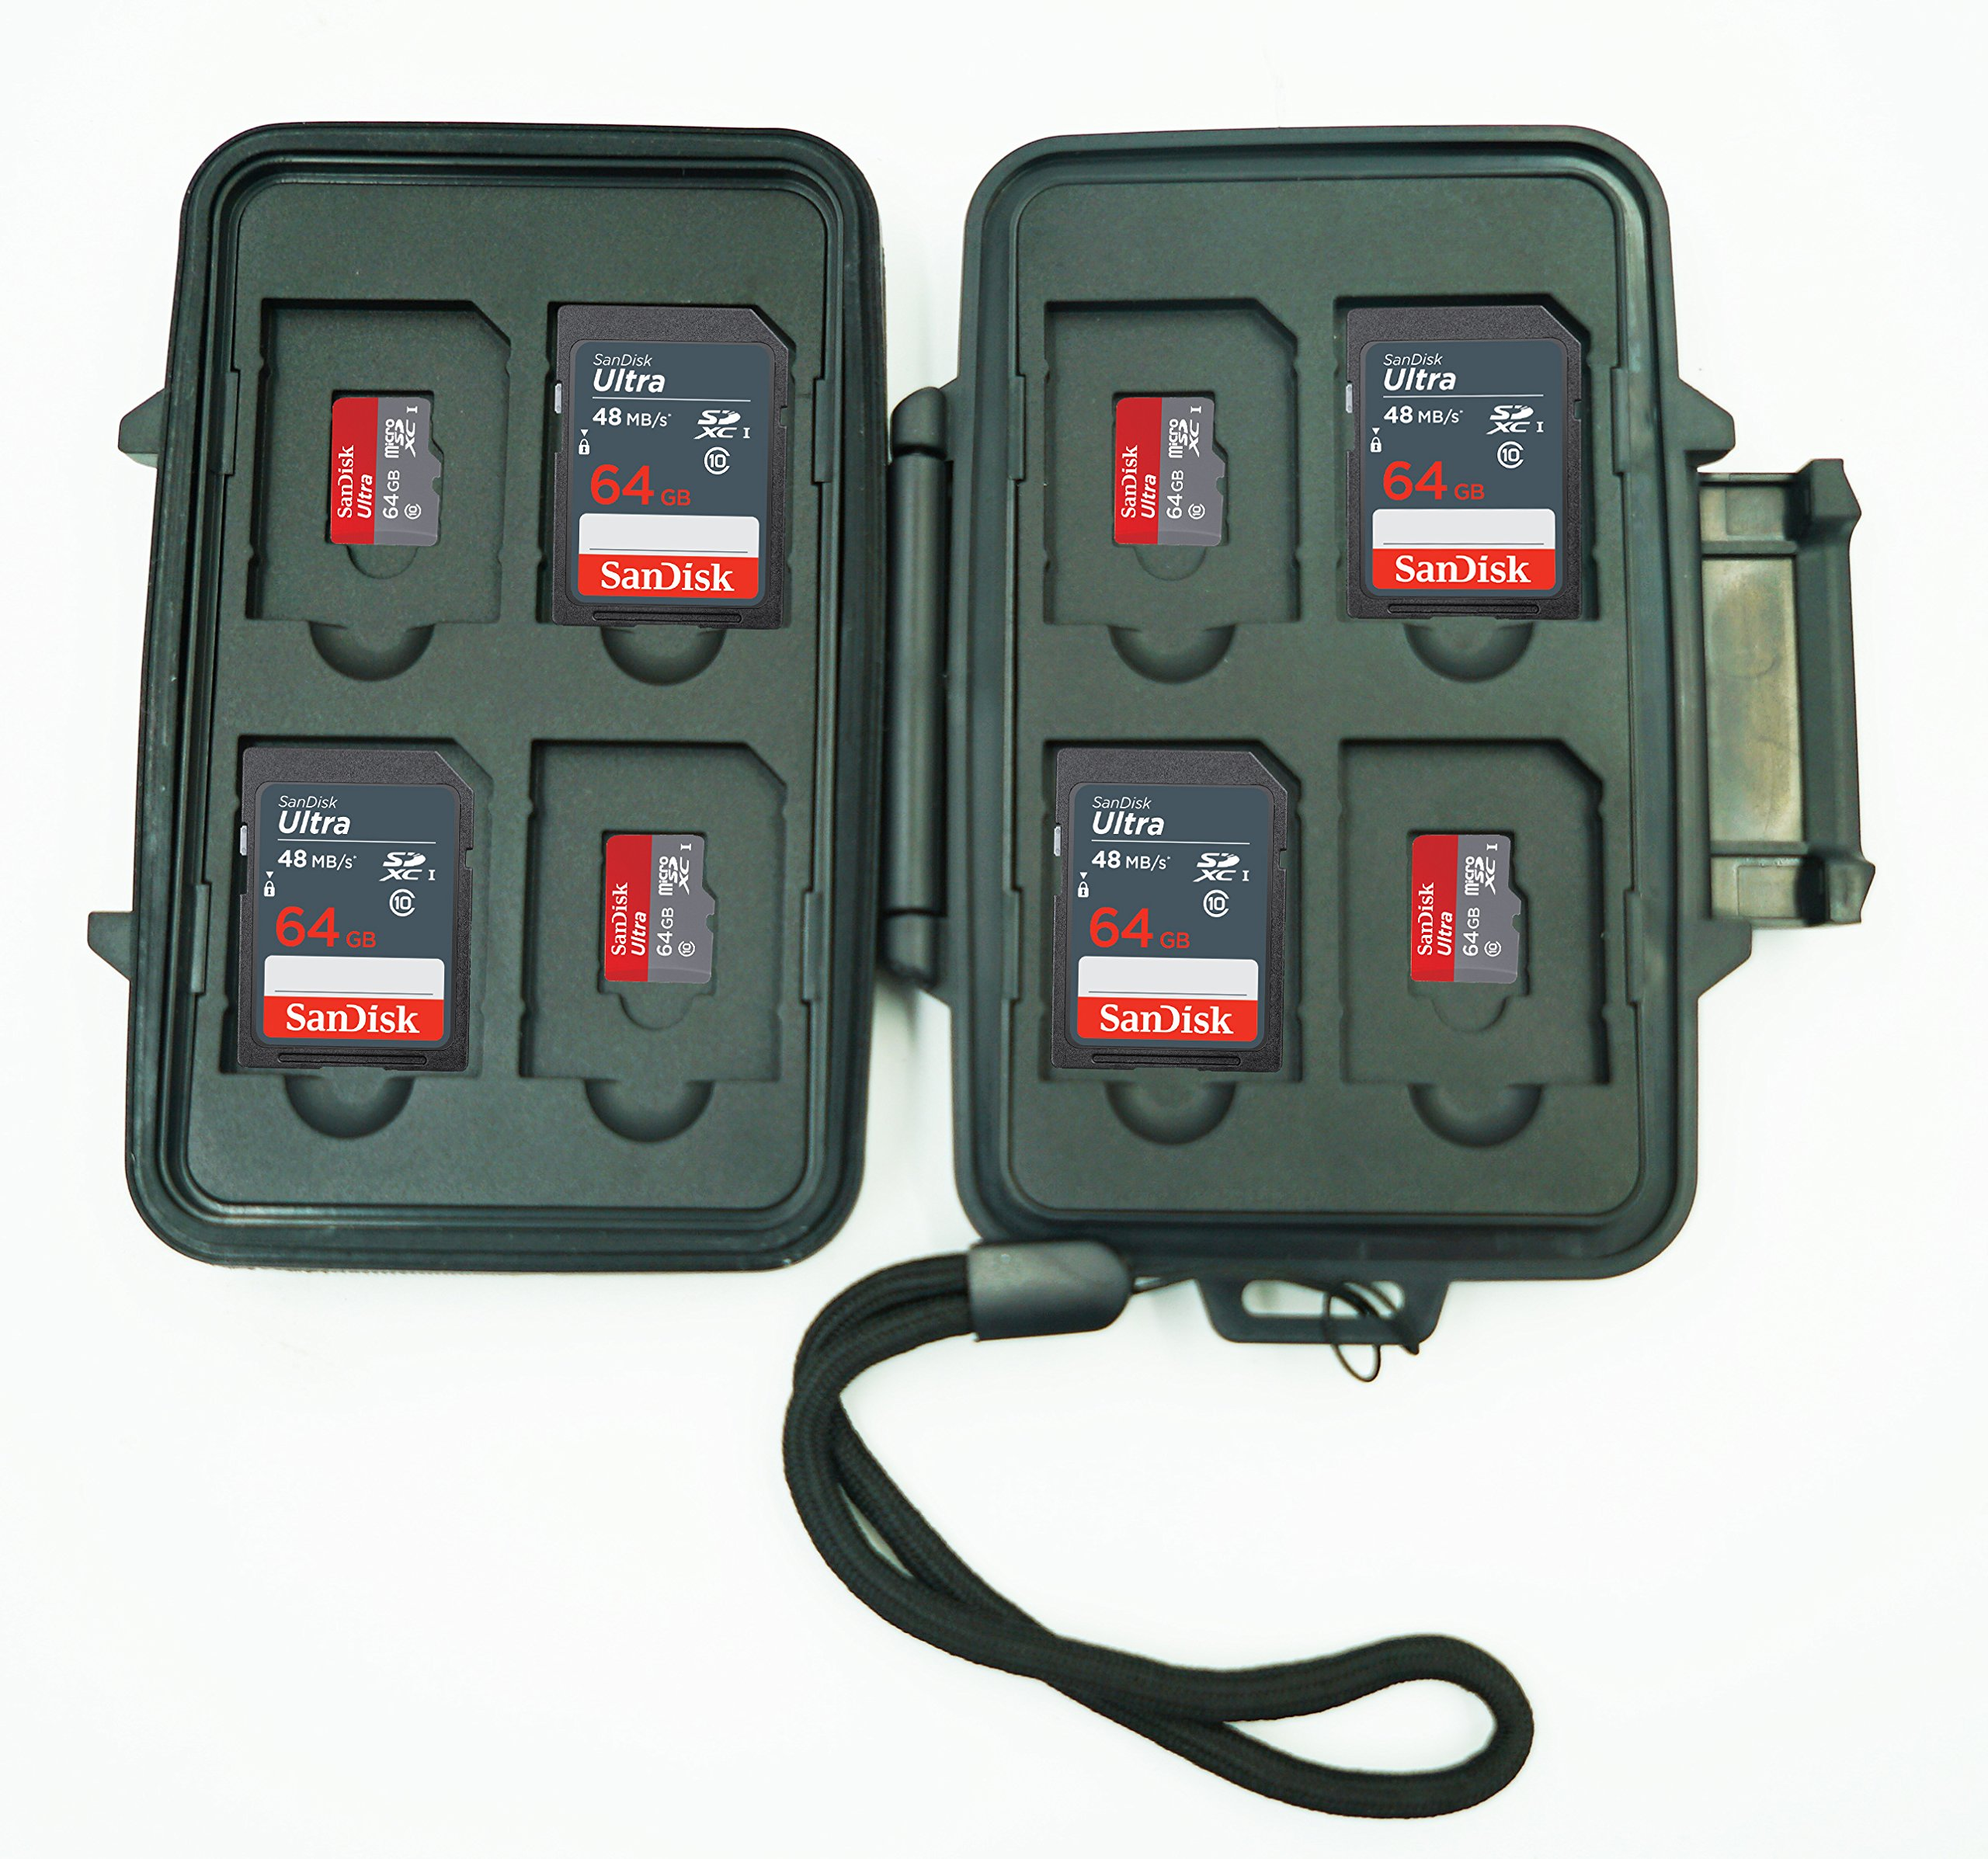 SD and Micro SD Memory Card Case, Sleek Heavy Duty Design. Water Proof up to 50 Feet and Shock Proof. Holds up to 16 cards total Come with a lanyard.